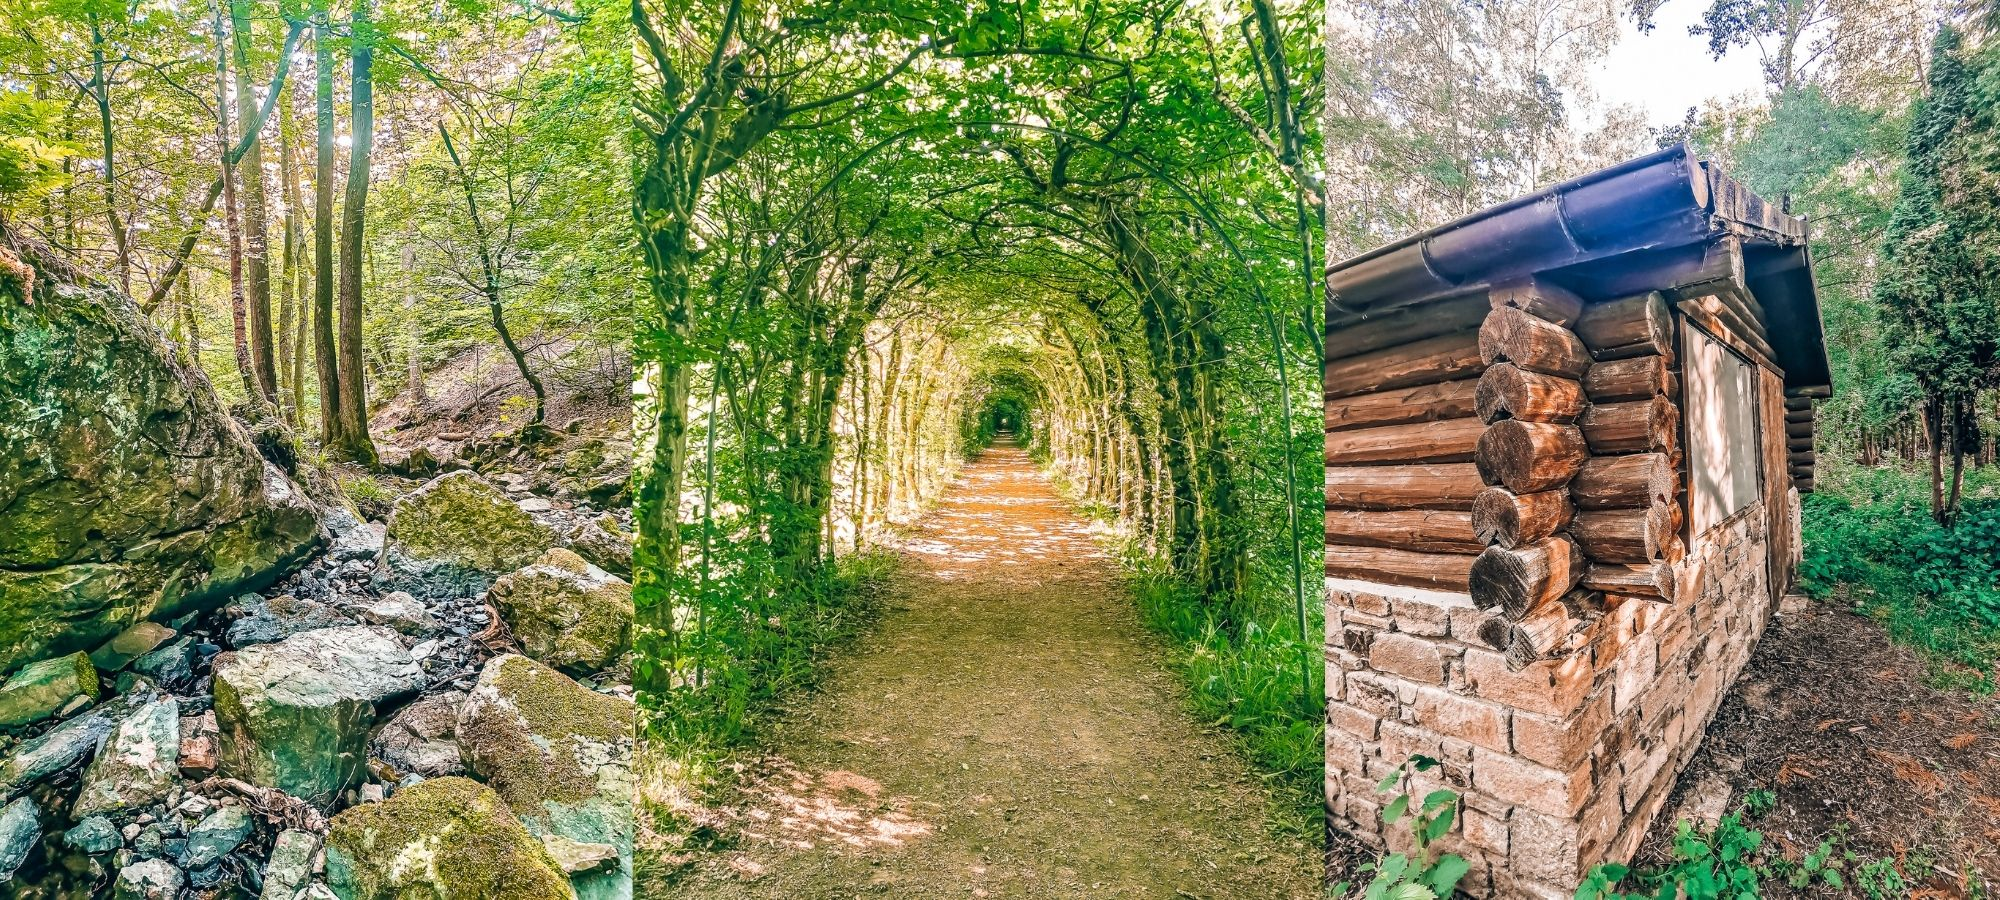 Left: small river. Middle: tunnel of love La Charmille. Right: wooden cabin